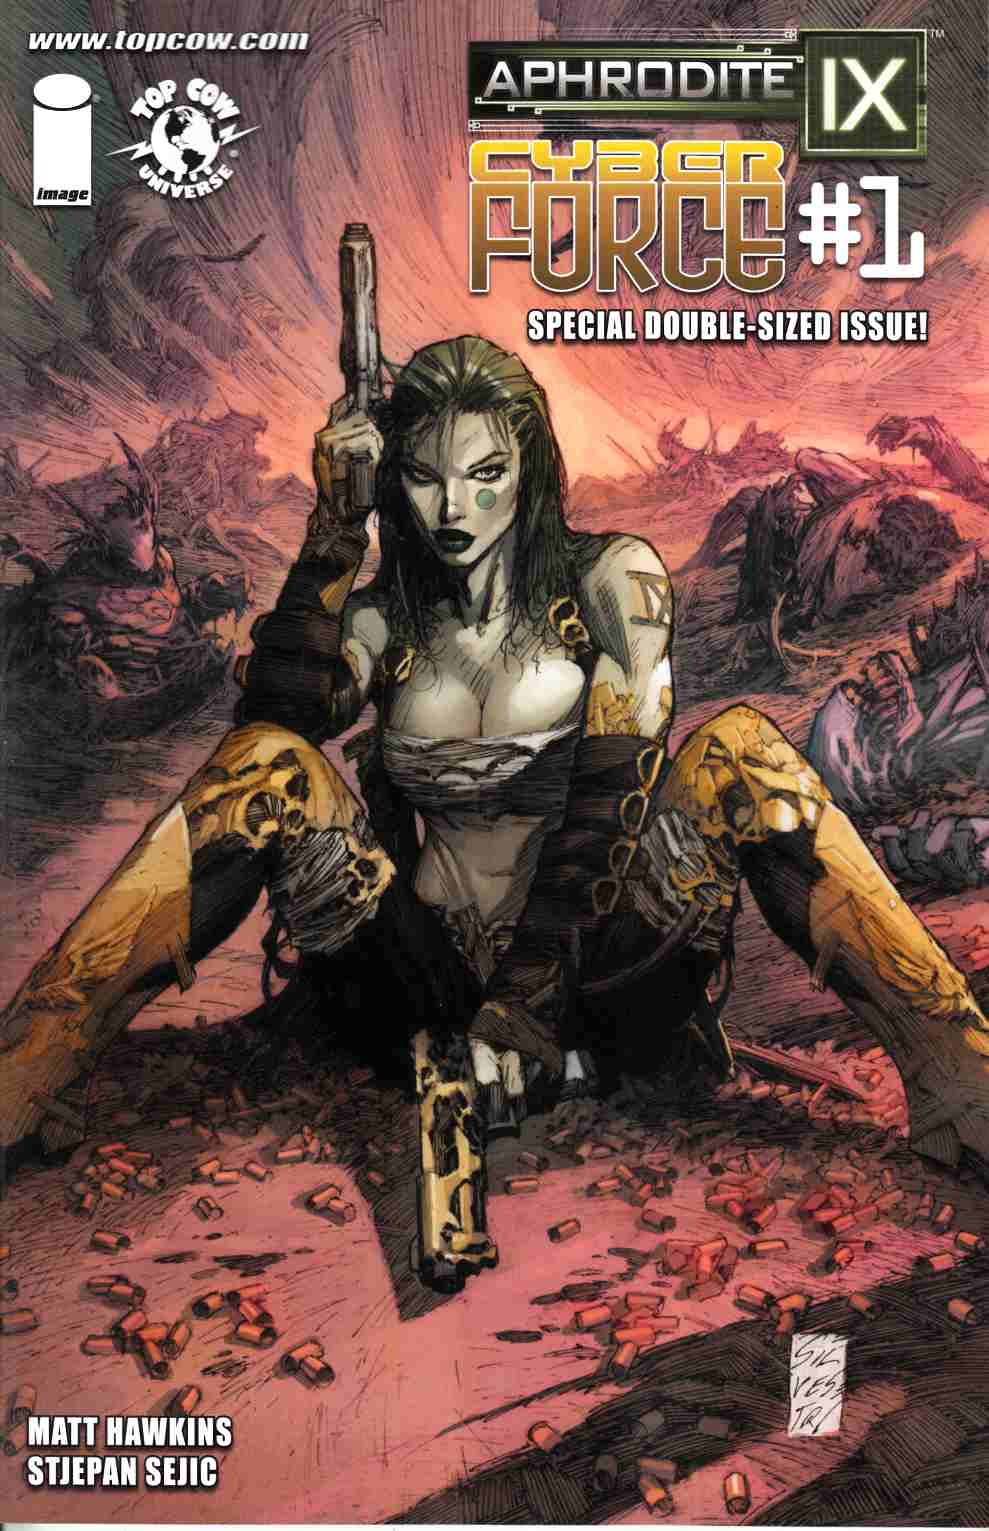 Aphrodite IX Cyber Force #1 Cover C- Silvestri [Comic] THUMBNAIL